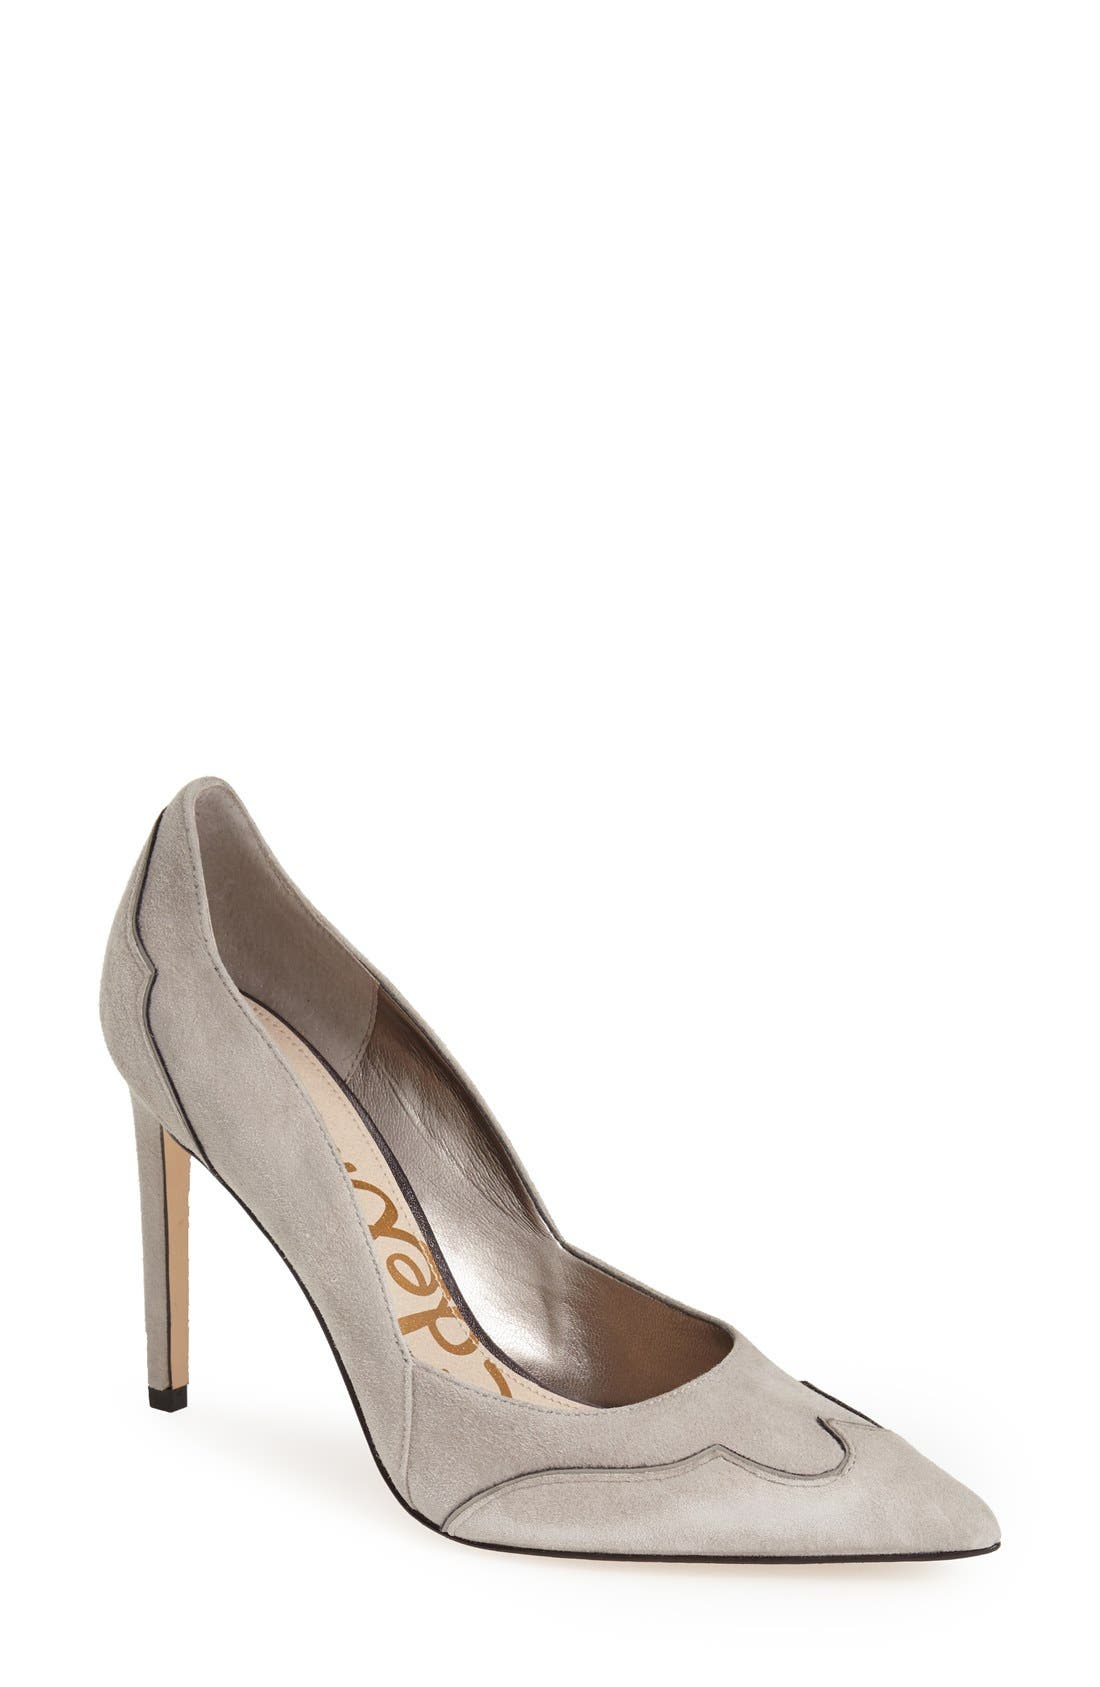 'Dixie' Suede Pointy Toe Pump,                         Main,                         color, Winter Sky